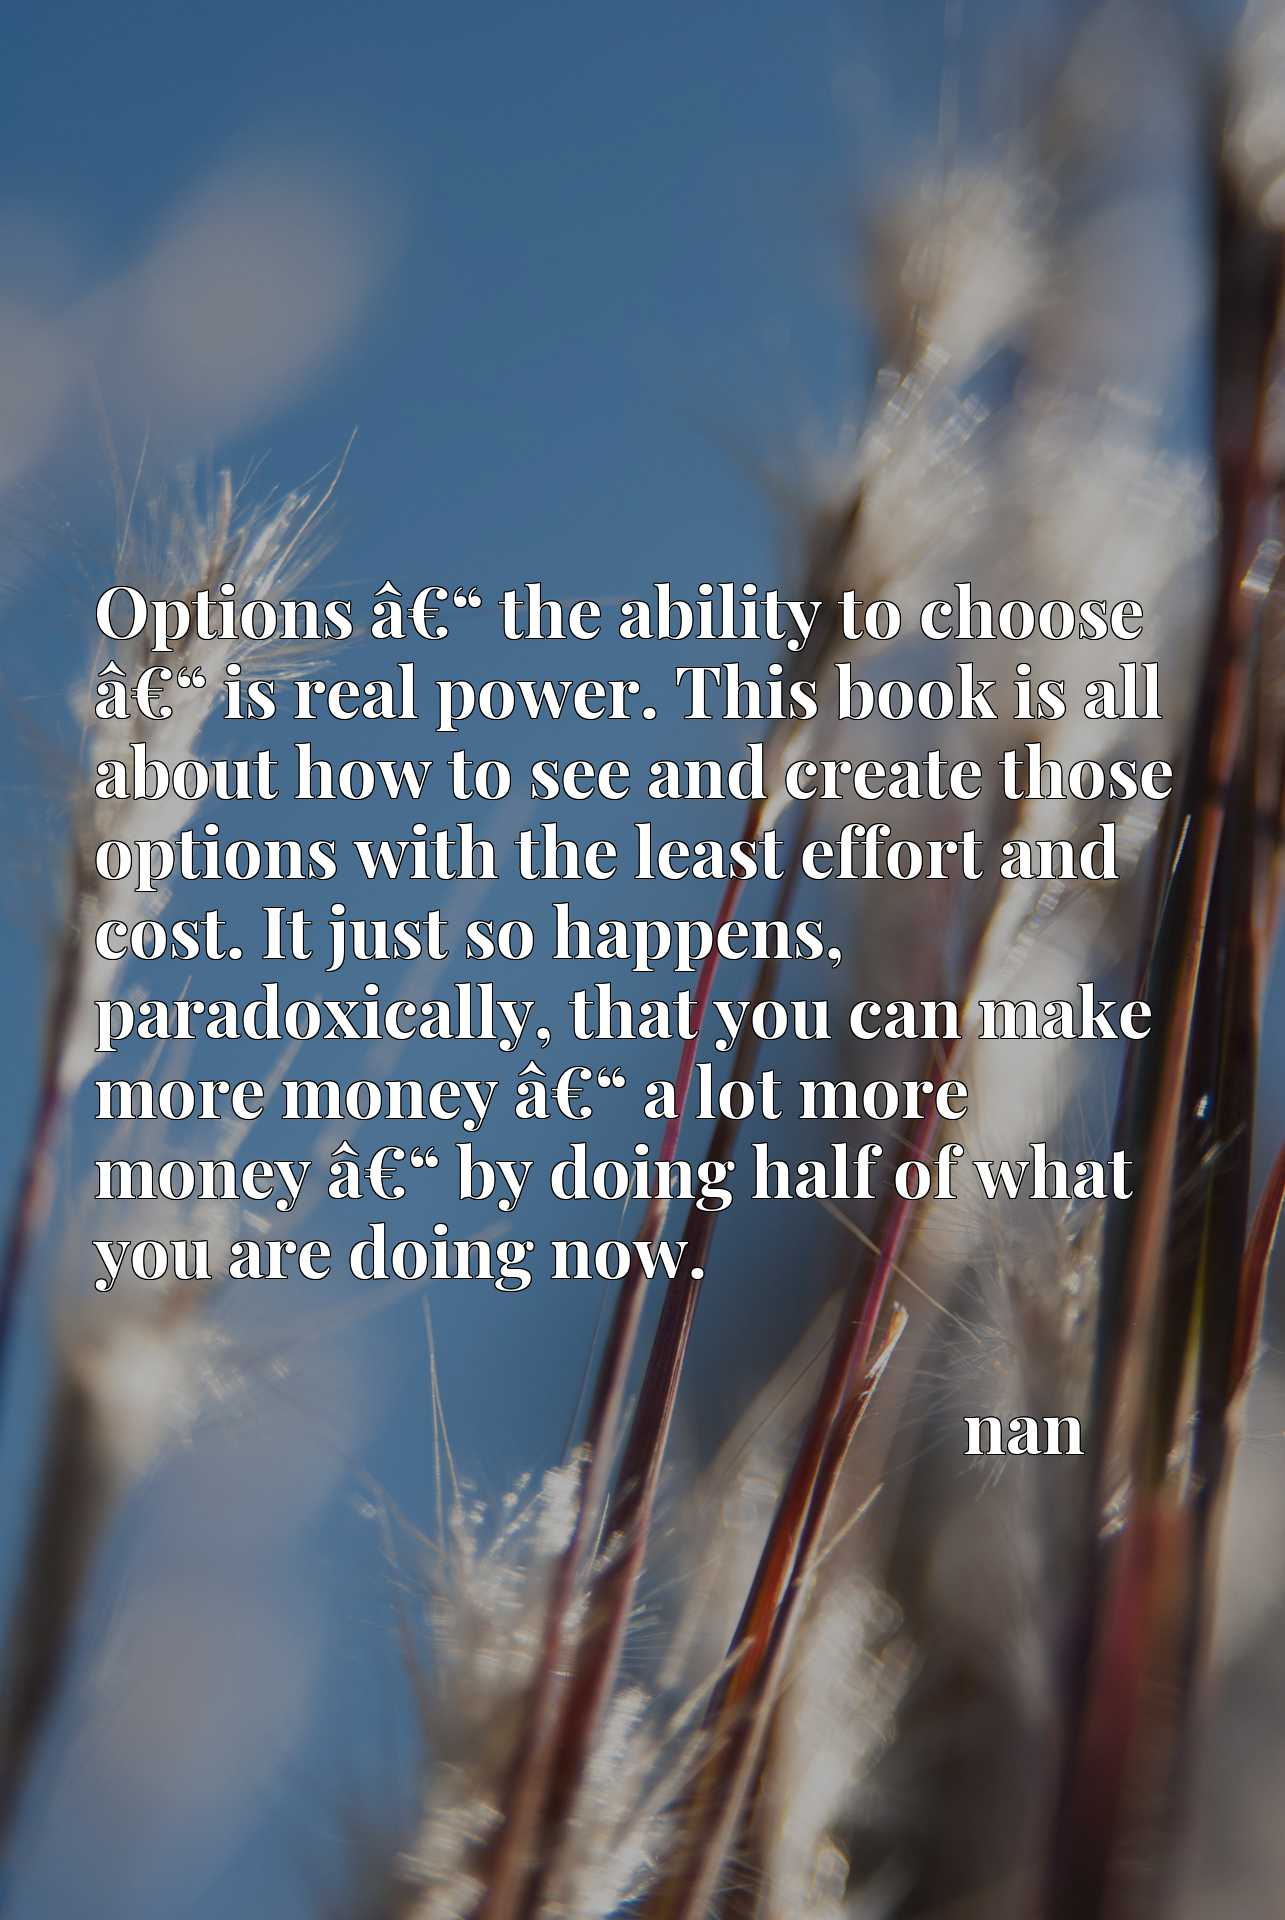 """Options aEUR"""" the ability to choose aEUR"""" is real power. This book is all about how to see and create those options with the least effort and cost. It just so happens, paradoxically, that you can make more money aEUR"""" a lot more money aEUR"""" by doing half of what you are doing now."""